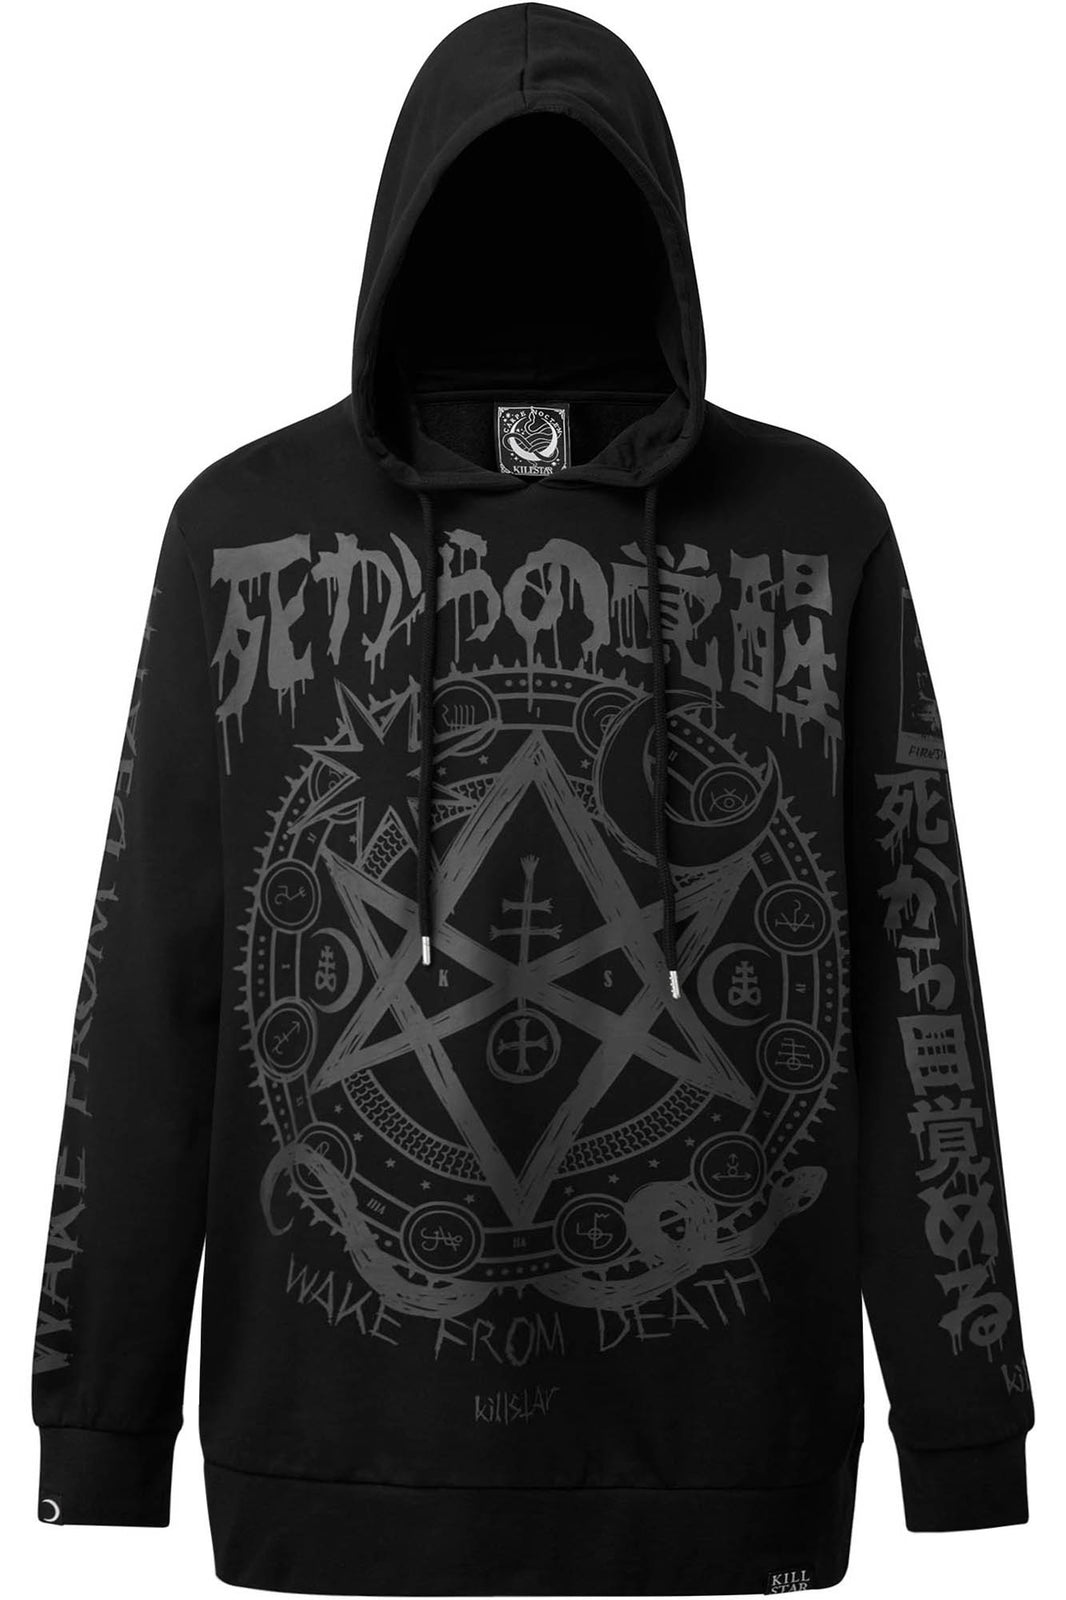 Wake From Death Hoodie [PLUS]